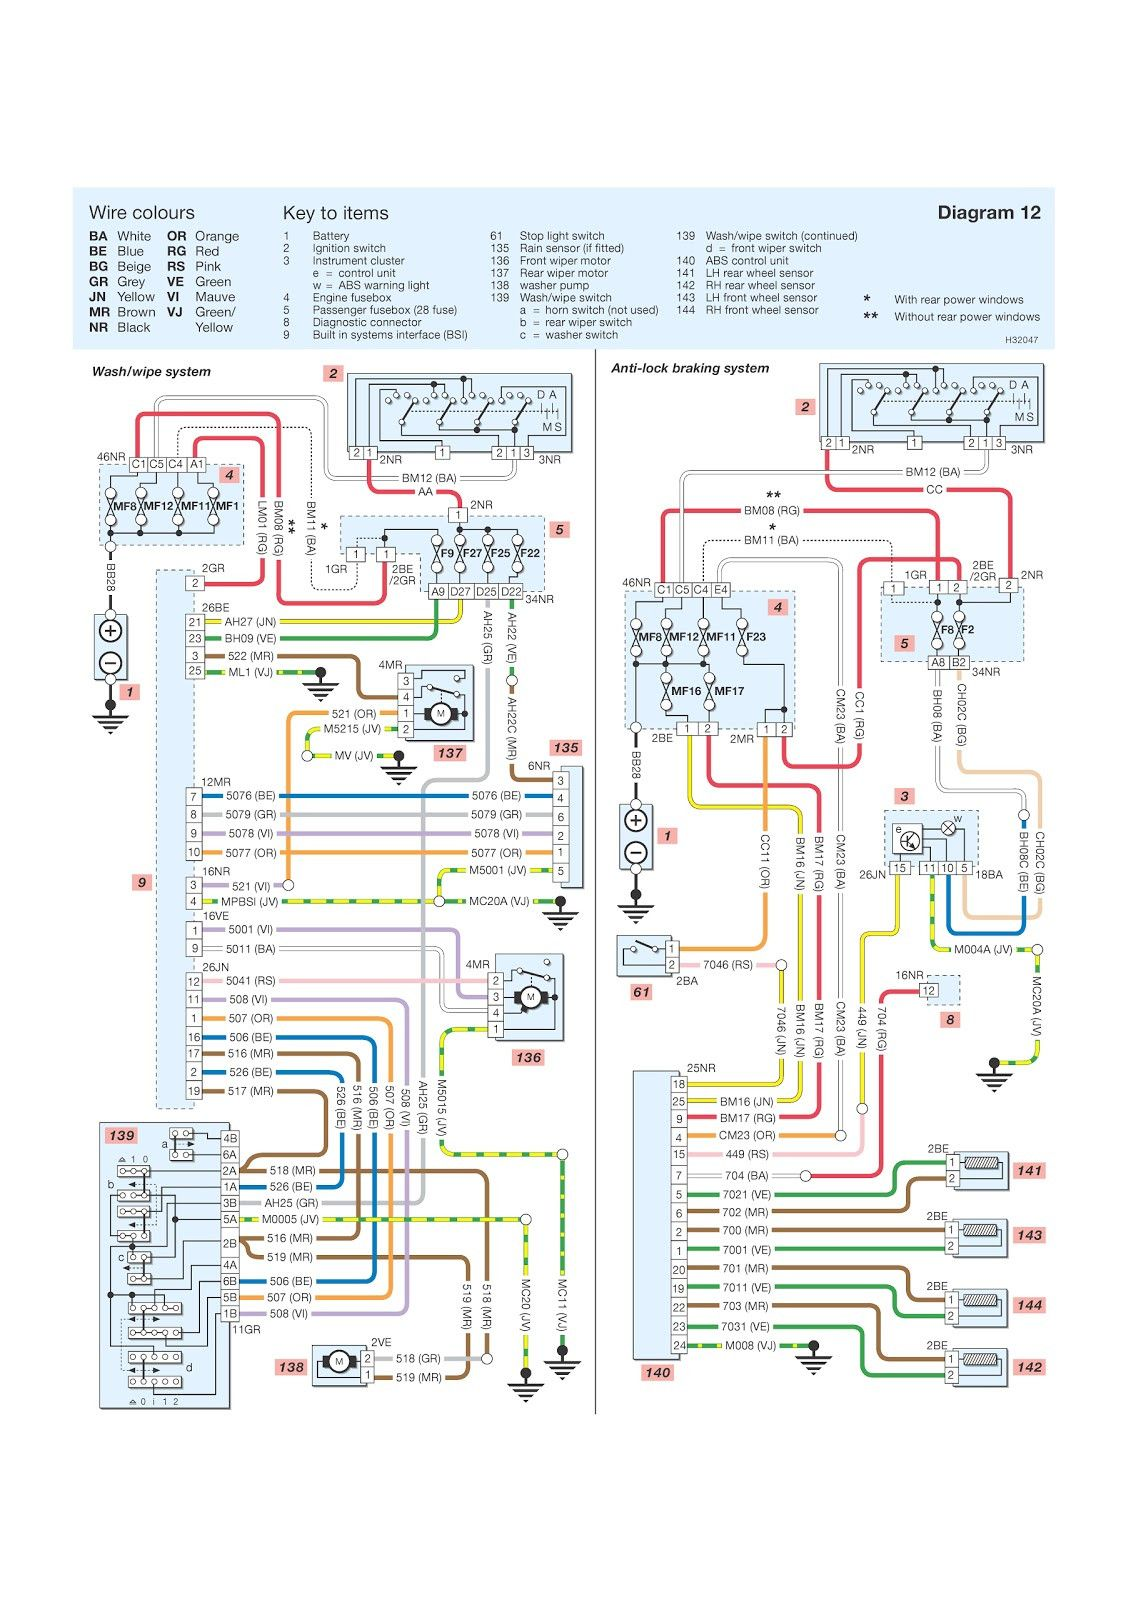 New Peugeot 206 Wiring Diagram Your Diagrams Source Adorable